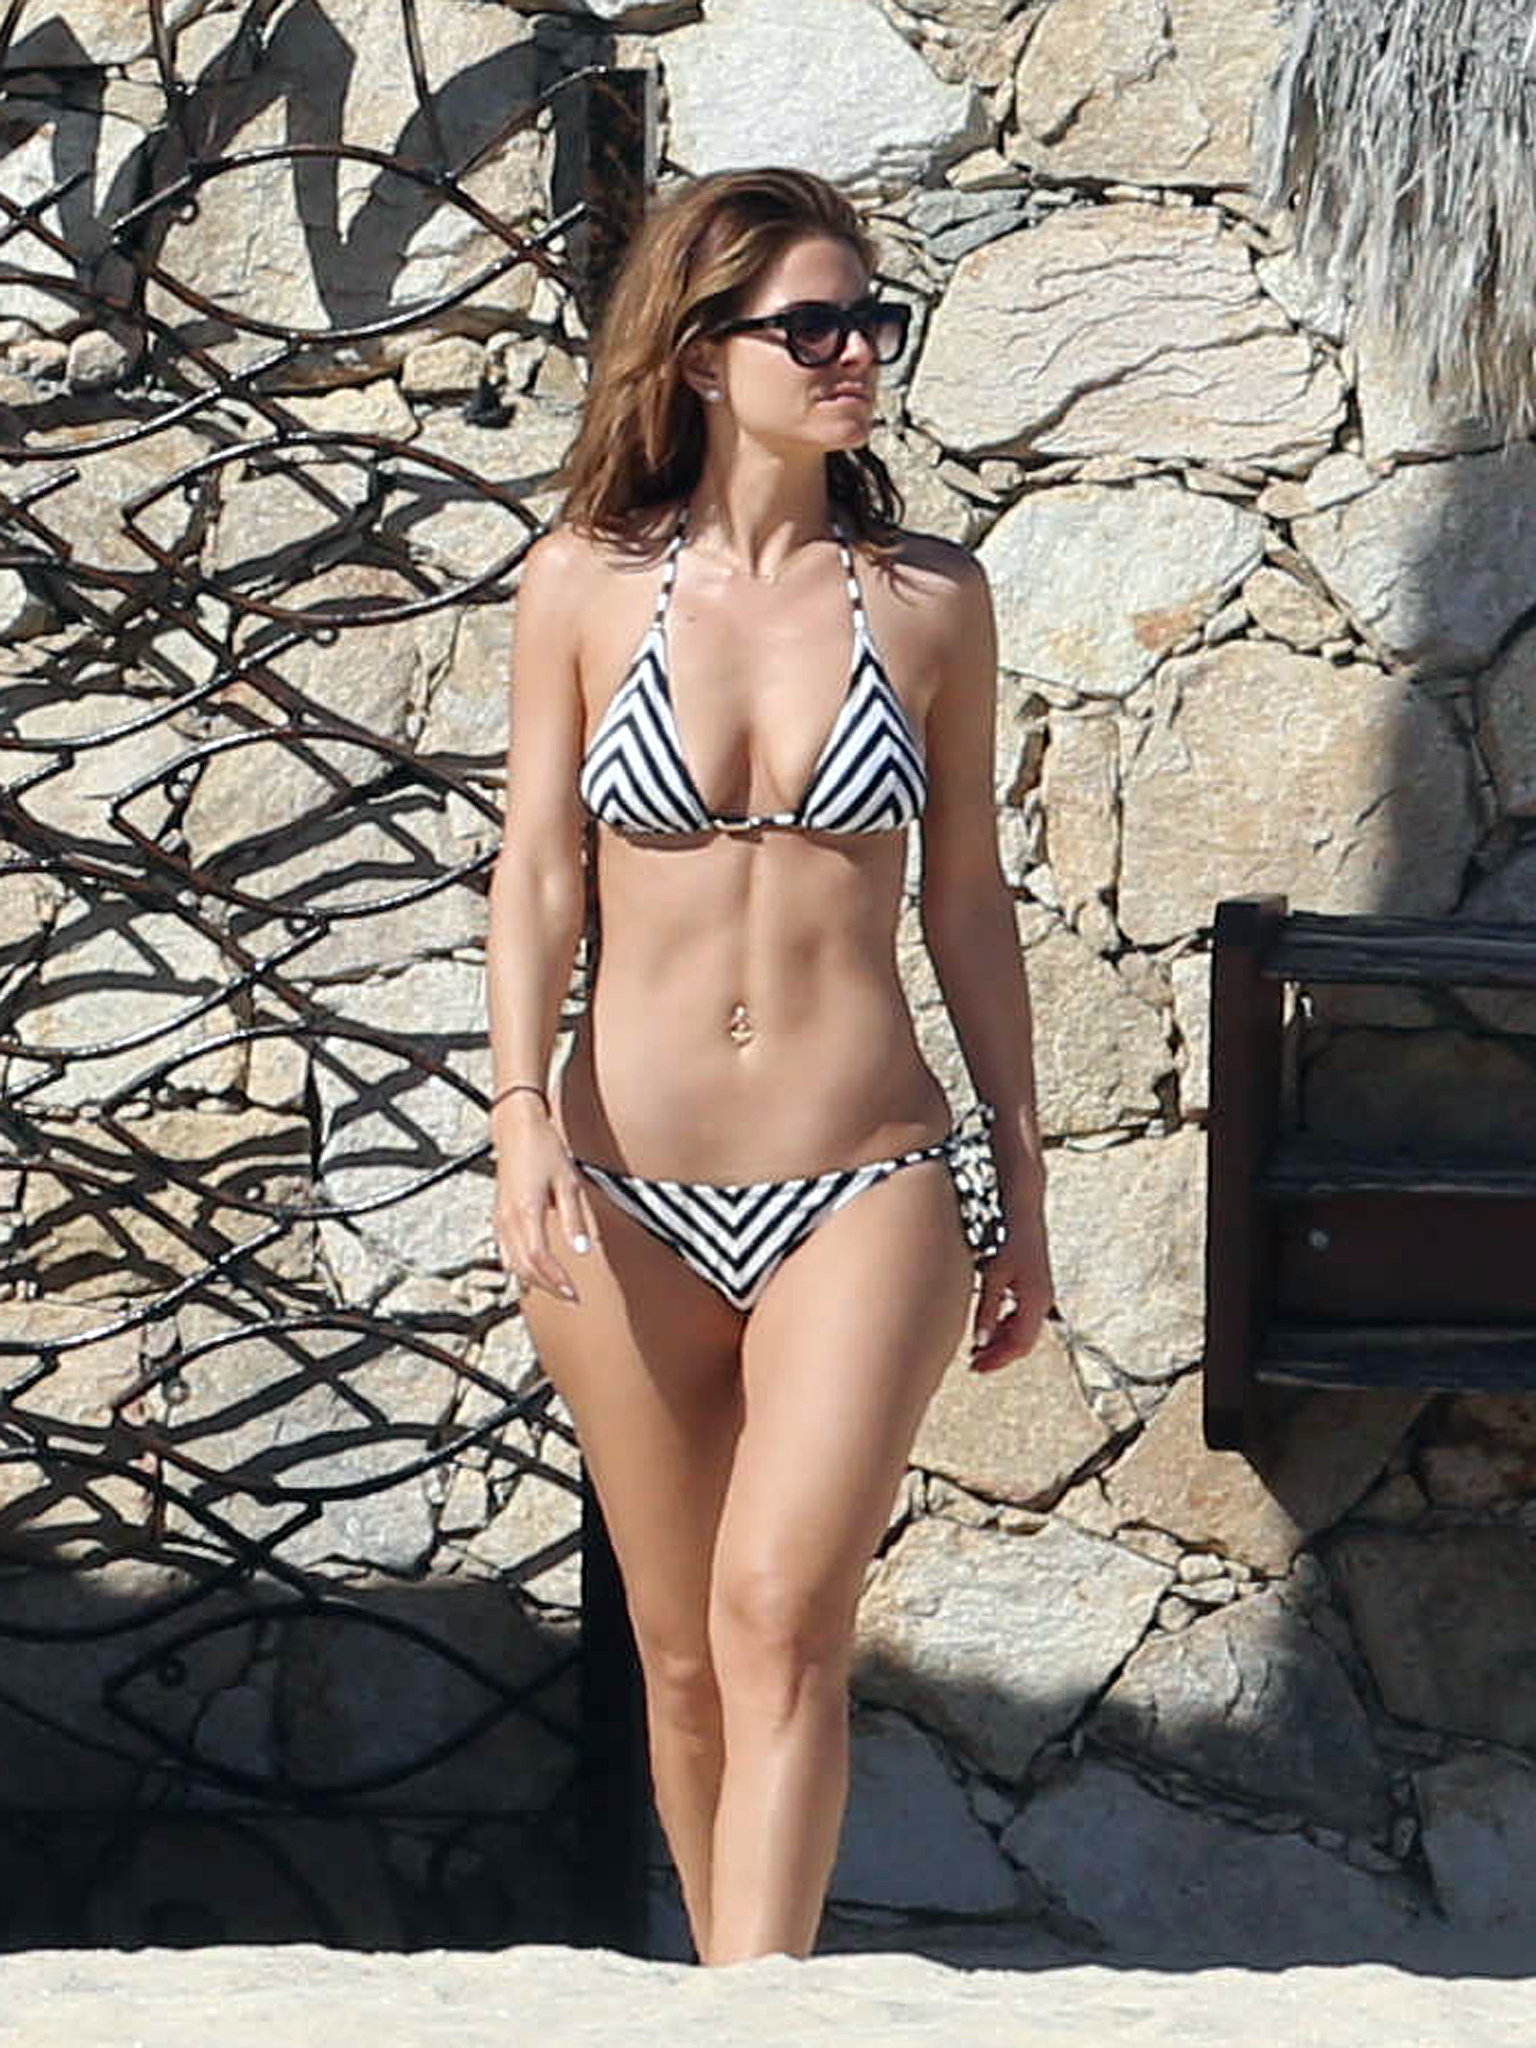 In January 2014, Maria Menounos donned a striped swimsuit in Cabo.